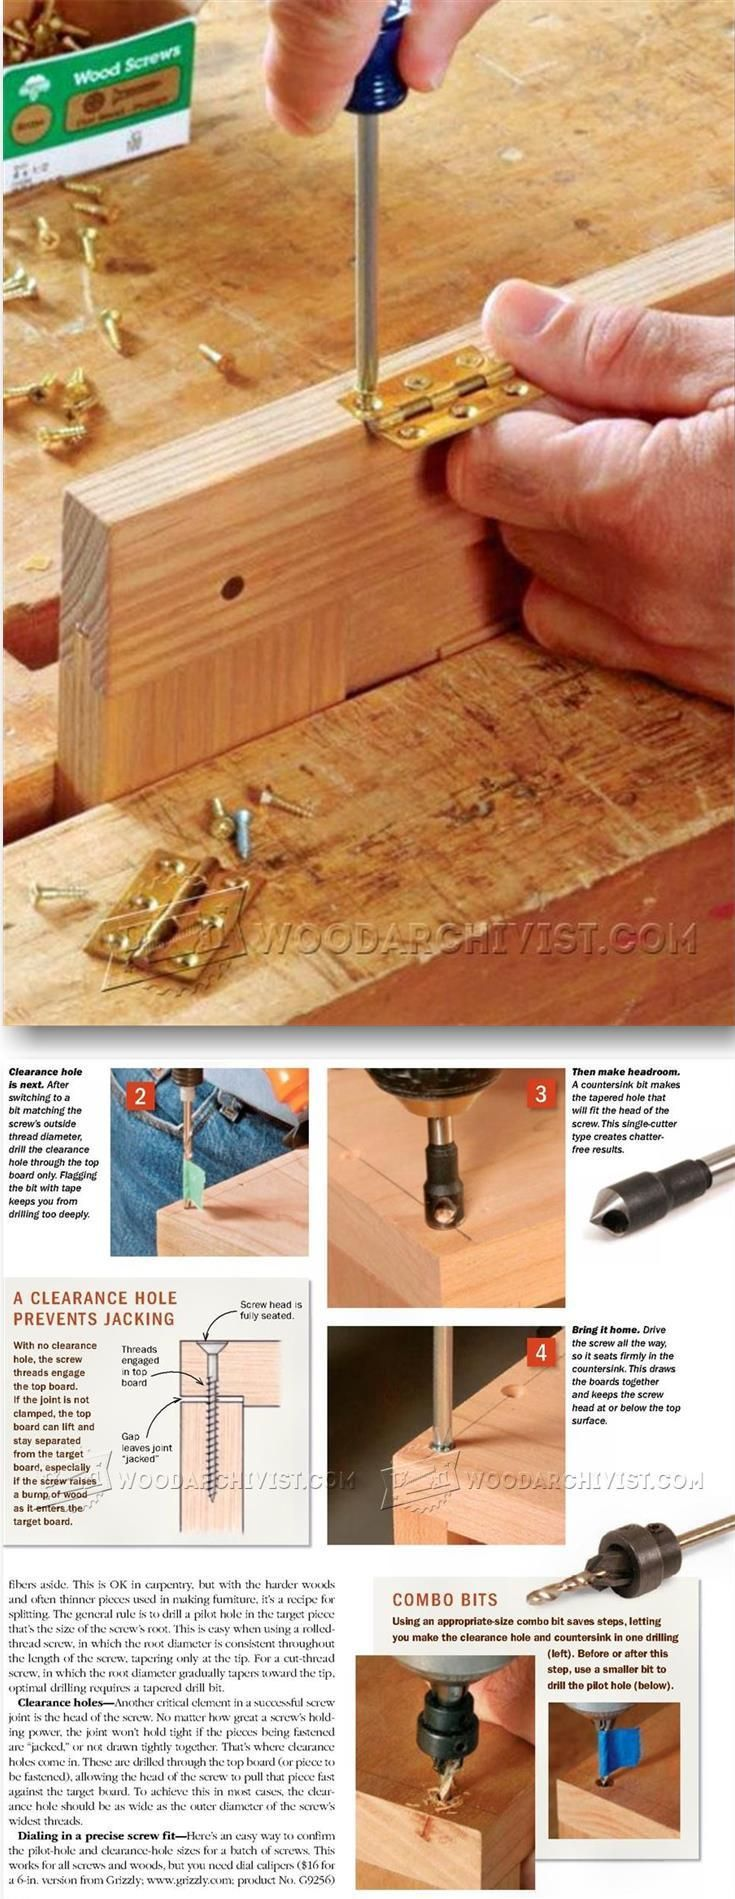 Wood Screw Basics - Joinery Tips, Jigs and Techniques | WoodArchivist.com